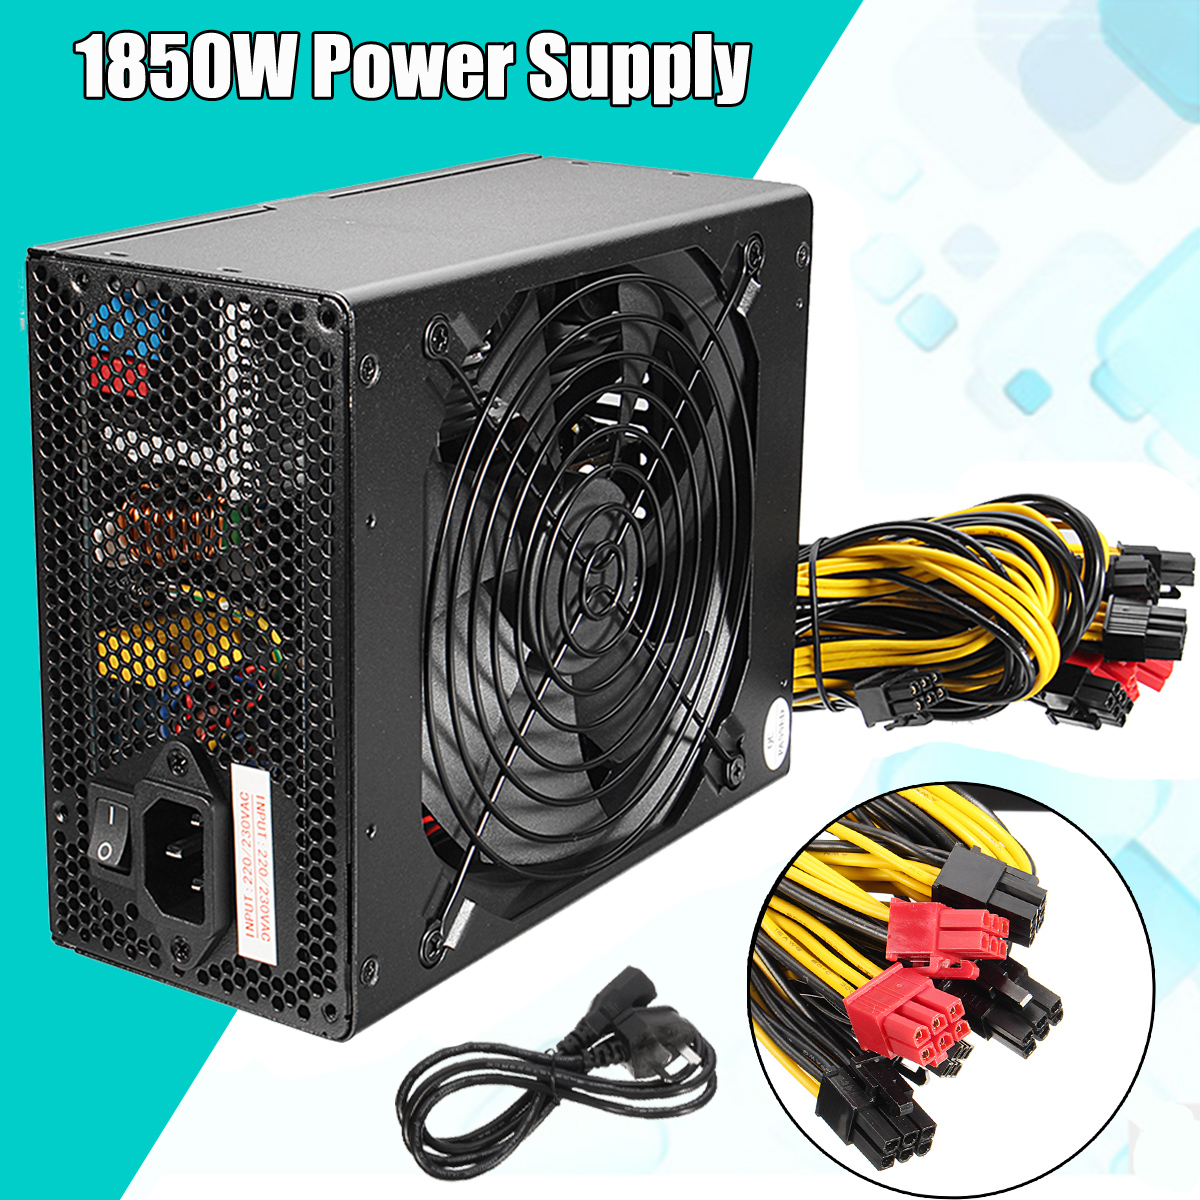 1850W MAX Miner Mining Power Supply 6 Pin For Antminer S9/S7/A7/A6/L3/R4 Bitcoin Coin Miner Computer Power Supply For BTC1850W MAX Miner Mining Power Supply 6 Pin For Antminer S9/S7/A7/A6/L3/R4 Bitcoin Coin Miner Computer Power Supply For BTC